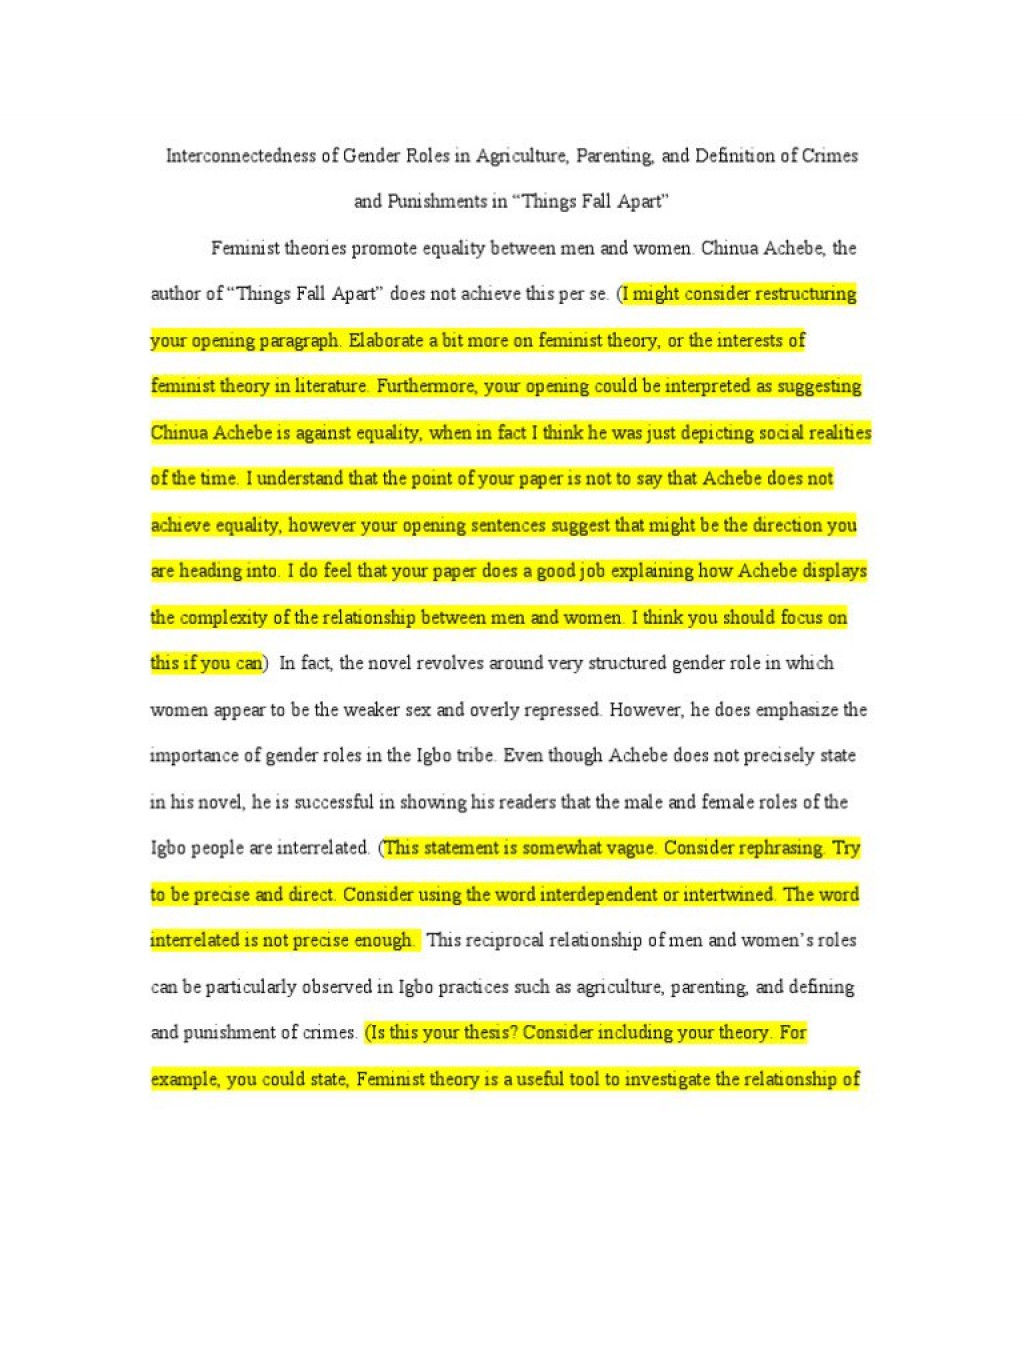 007 Essay Example Gender Equality About Inequality Dracula Essays Custom Argumentative On In The Workplace Top Outline Research Paper 300 Words Large